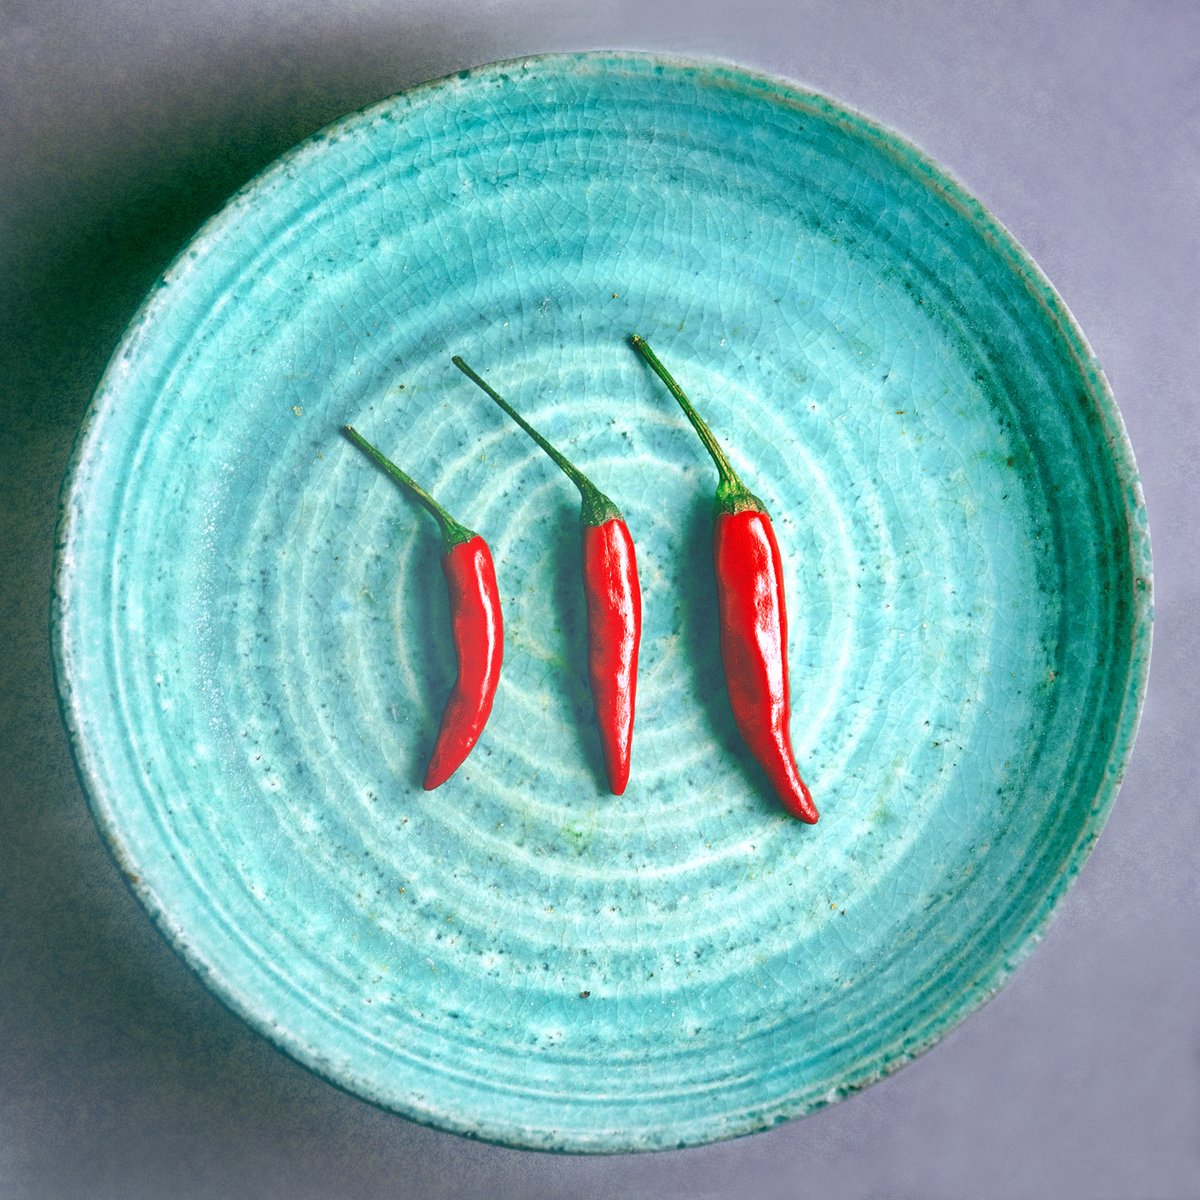 A nicely composed still-life from @KarenWortleyTog. Love the colours and simplicity! #WexMondays https://t.co/QYLIYFCwRf